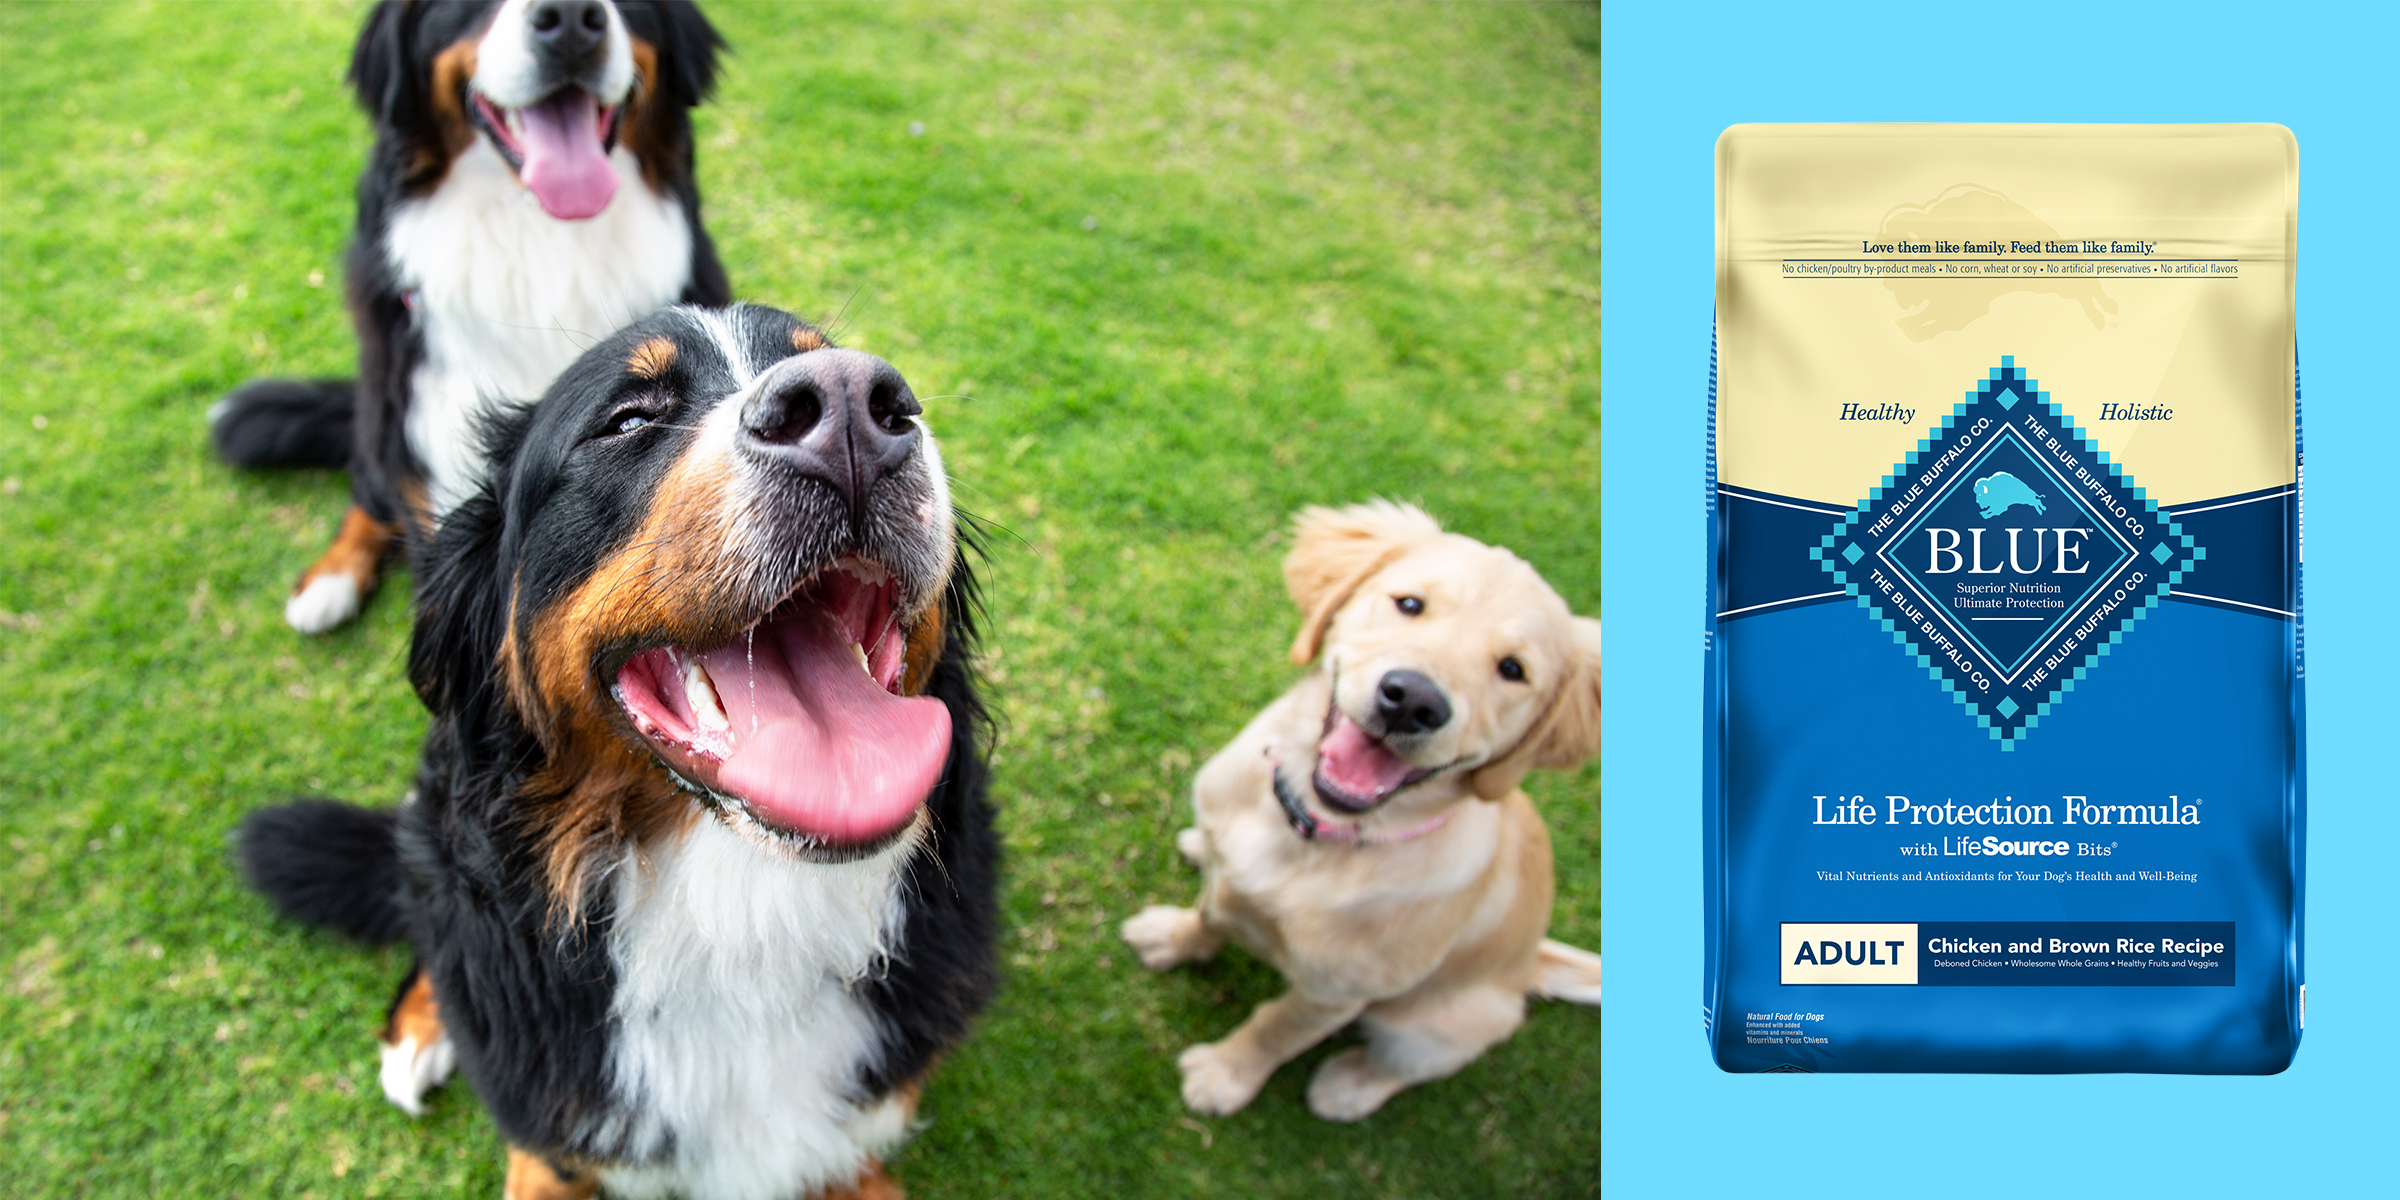 Best Dry Dog Food According To Experts